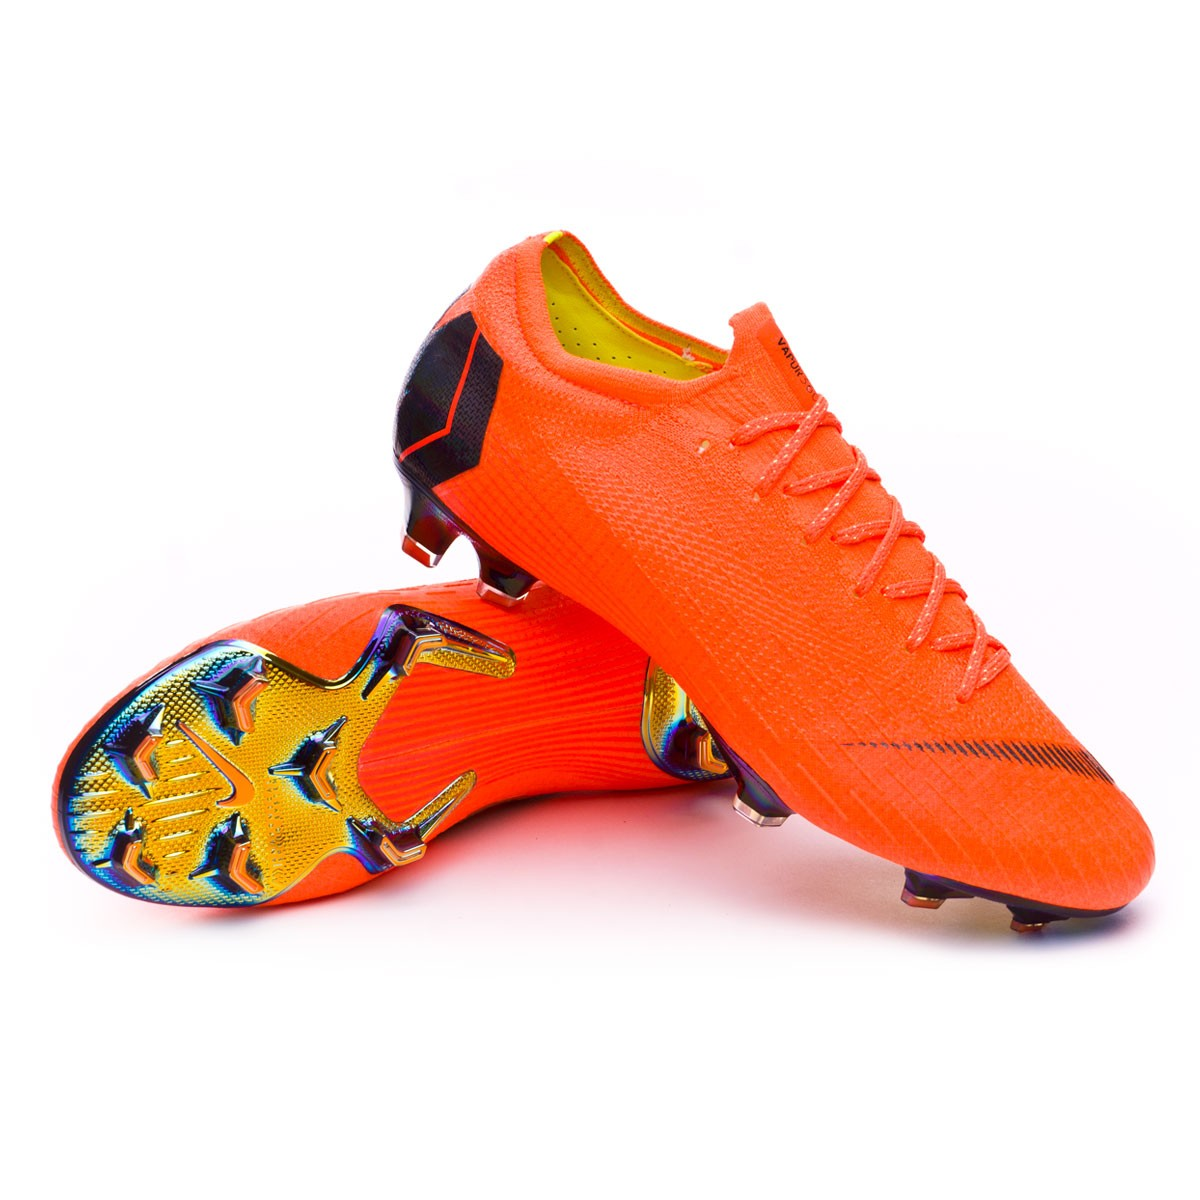 Boot Nike Mercurial Vapor XII Elite FG Total orange-Black-Volt ... d030fc250233